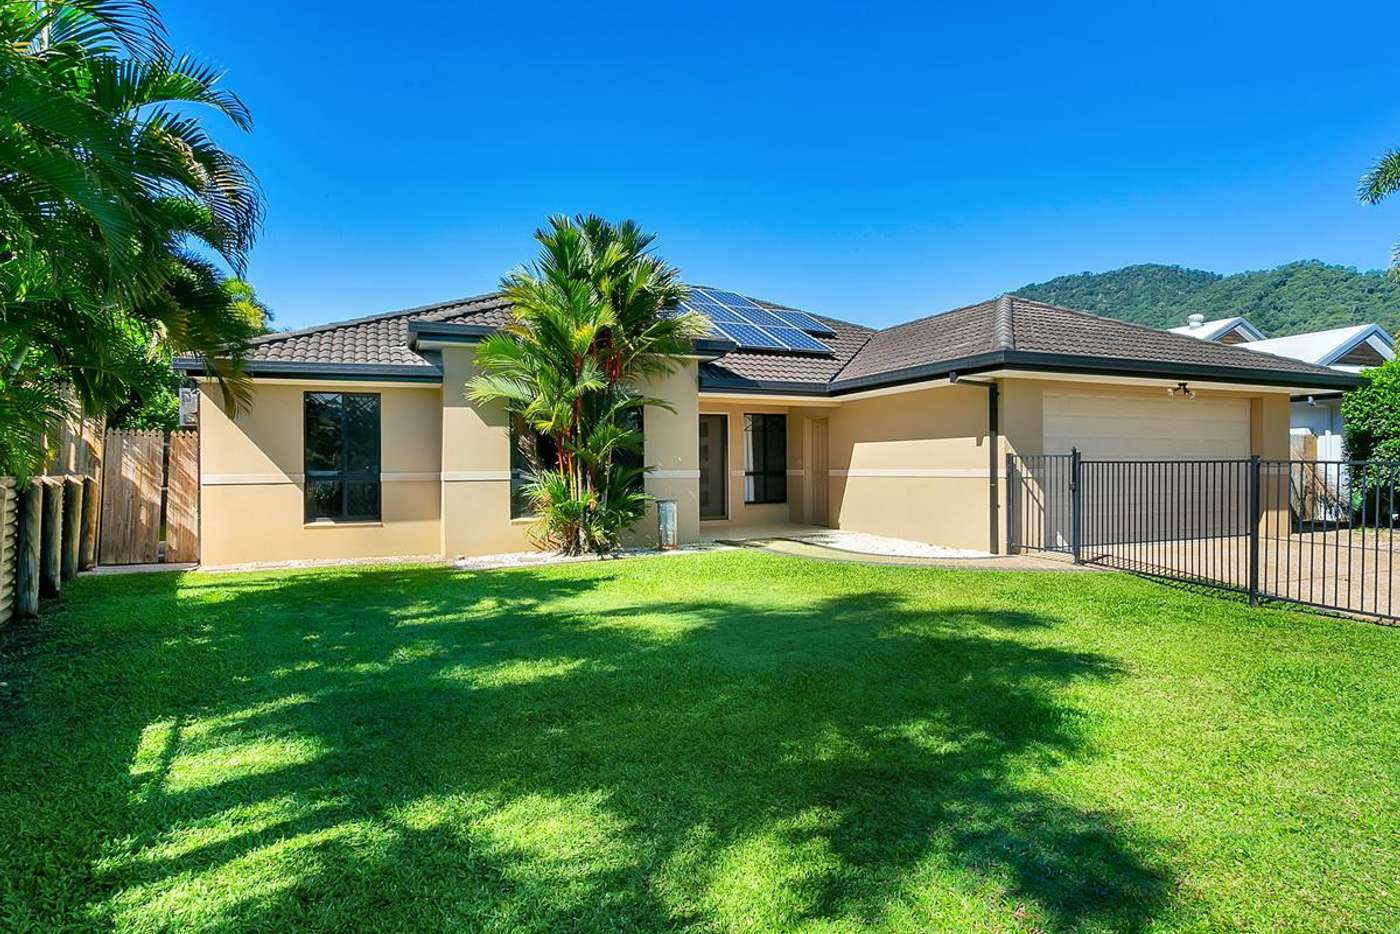 Main view of Homely house listing, 28 Greenock Way, Brinsmead QLD 4870